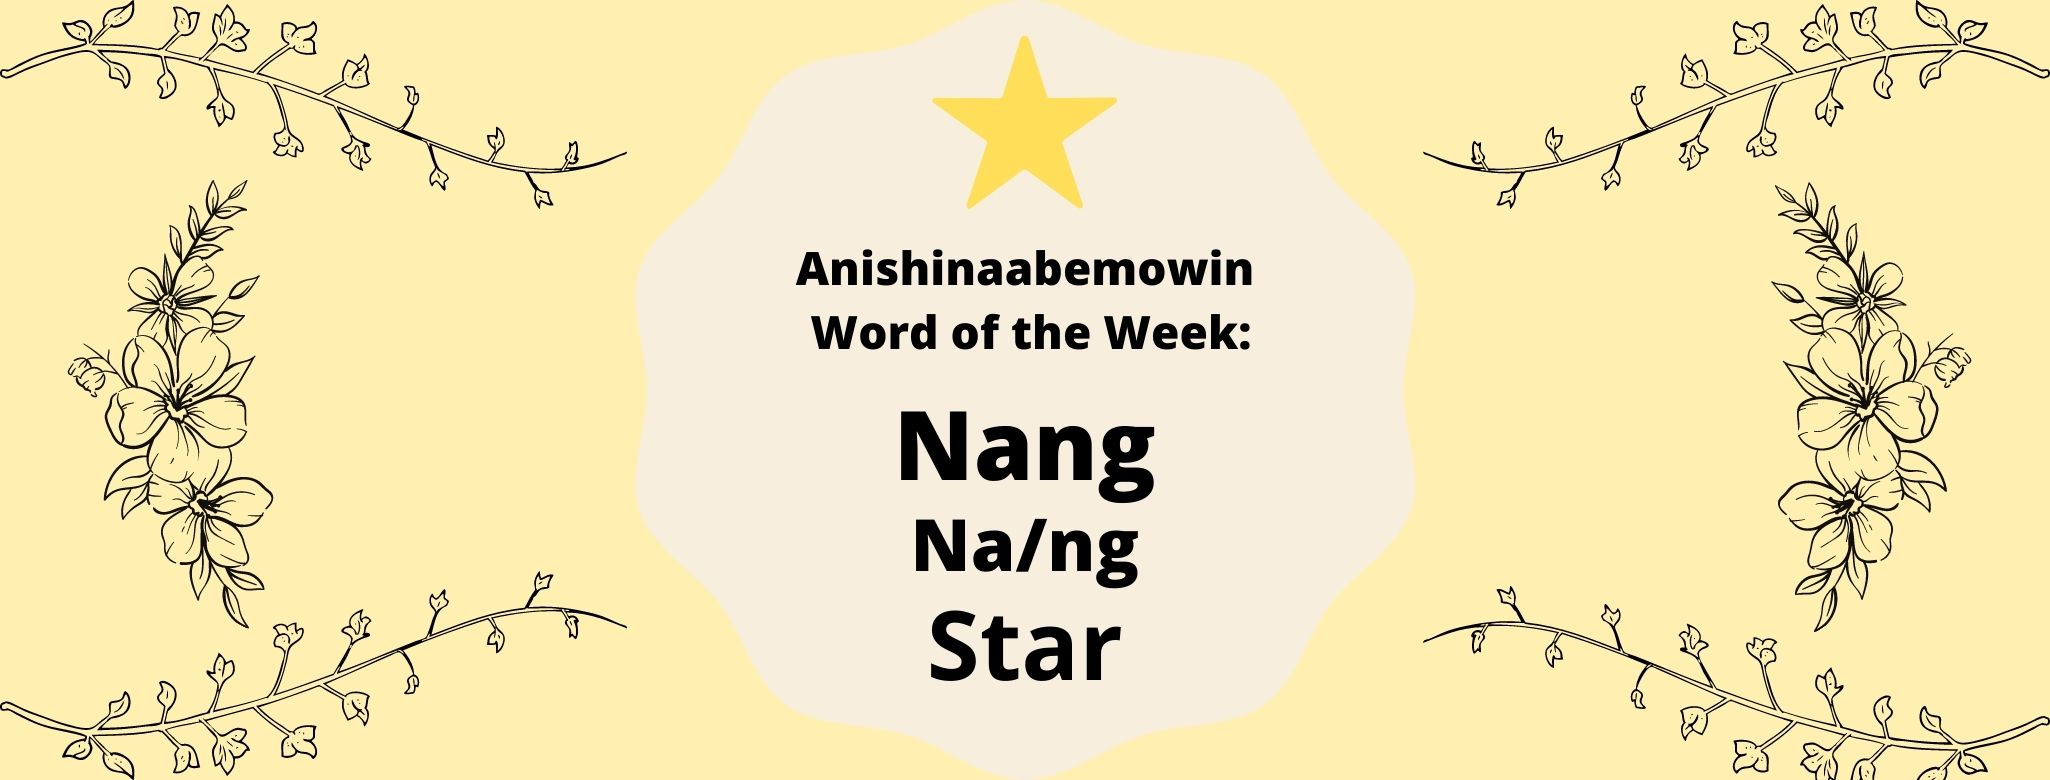 Anishinaabemowin Word of the Week Nang Nang Star